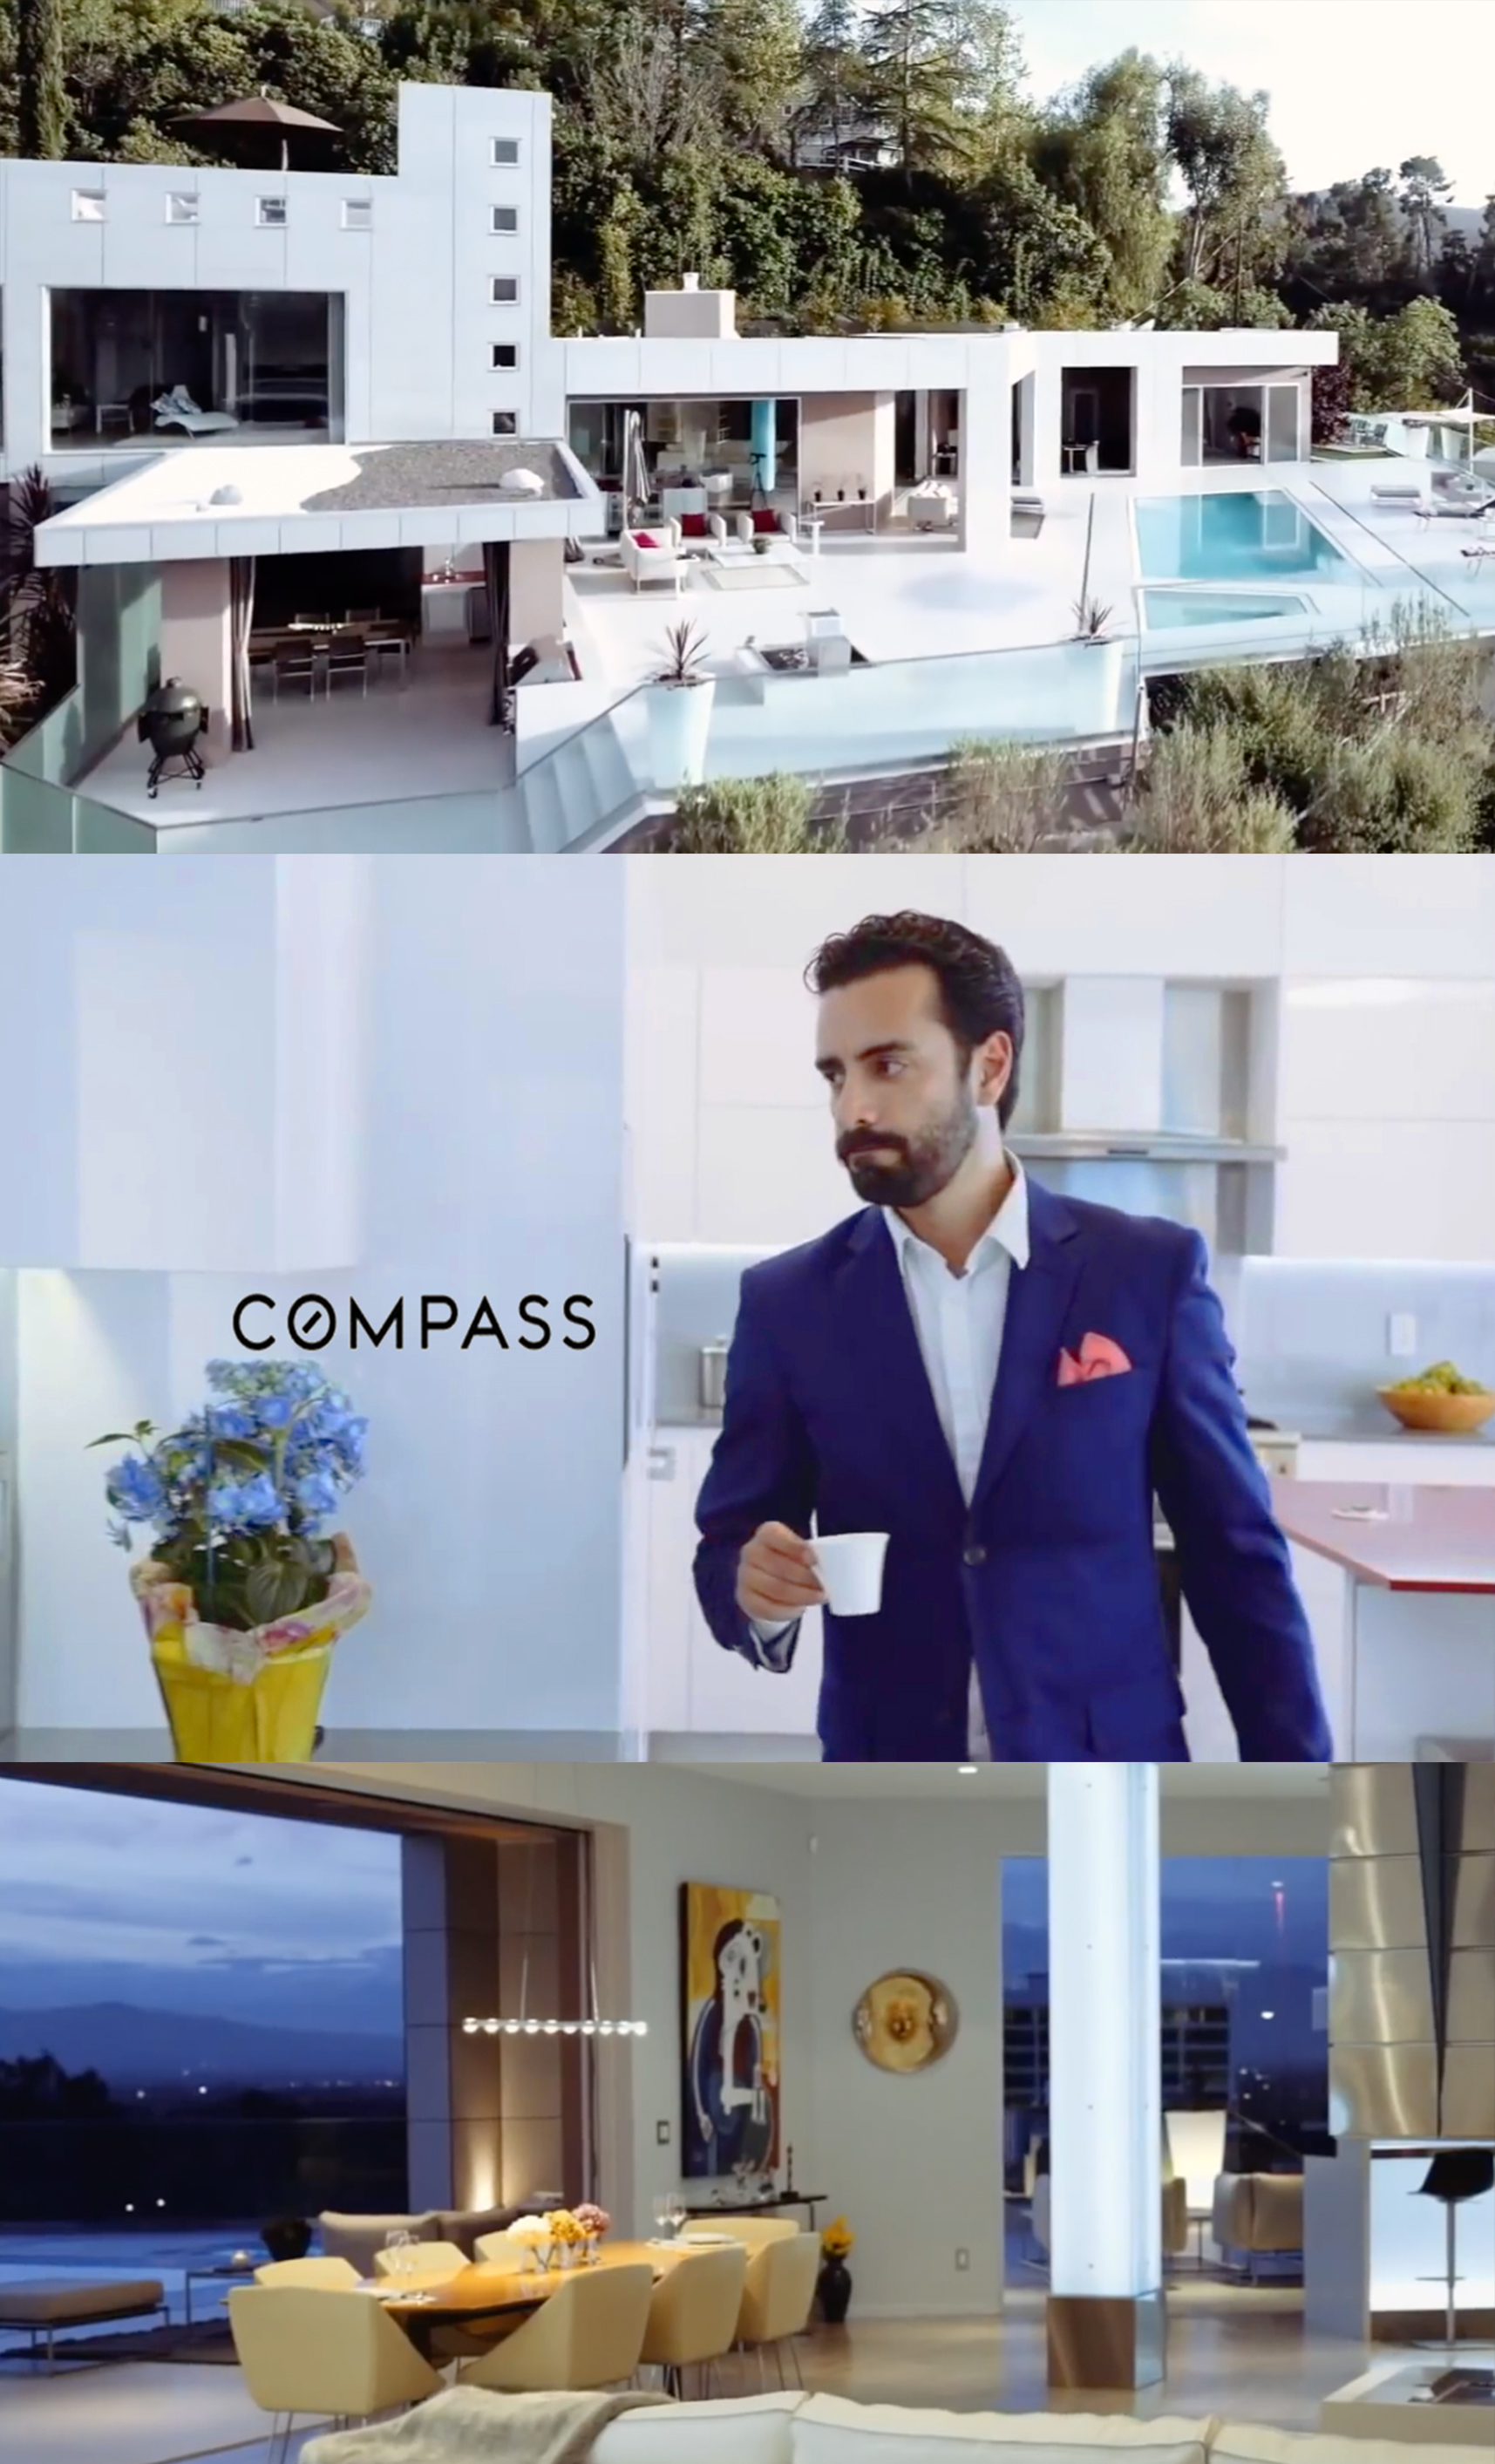 Arsi Nami in Compass ad